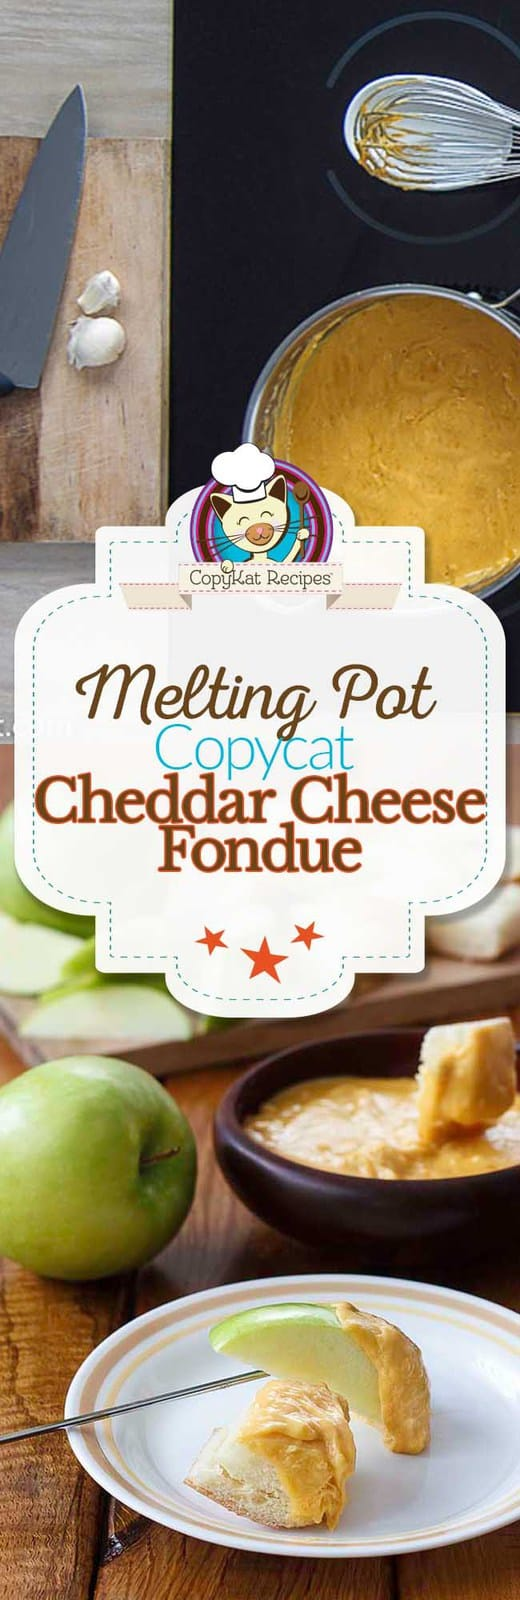 Step by Step instructions on how to make the Melting Pot Cheddar Cheese Fondue. #cheese #fondue #sauce #copycat